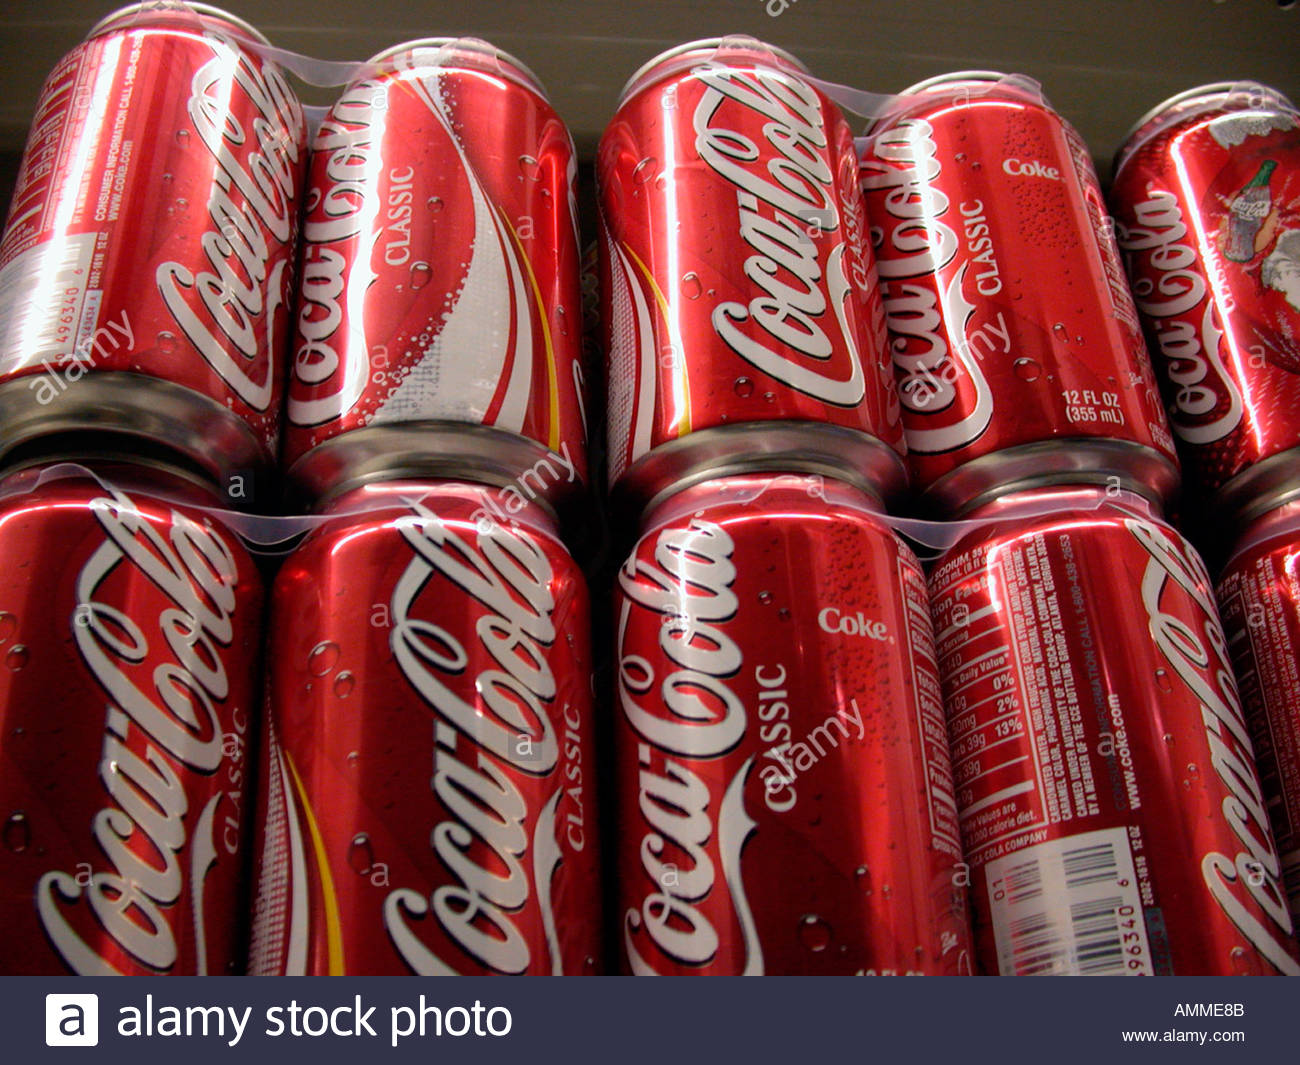 Best quality Coca cola